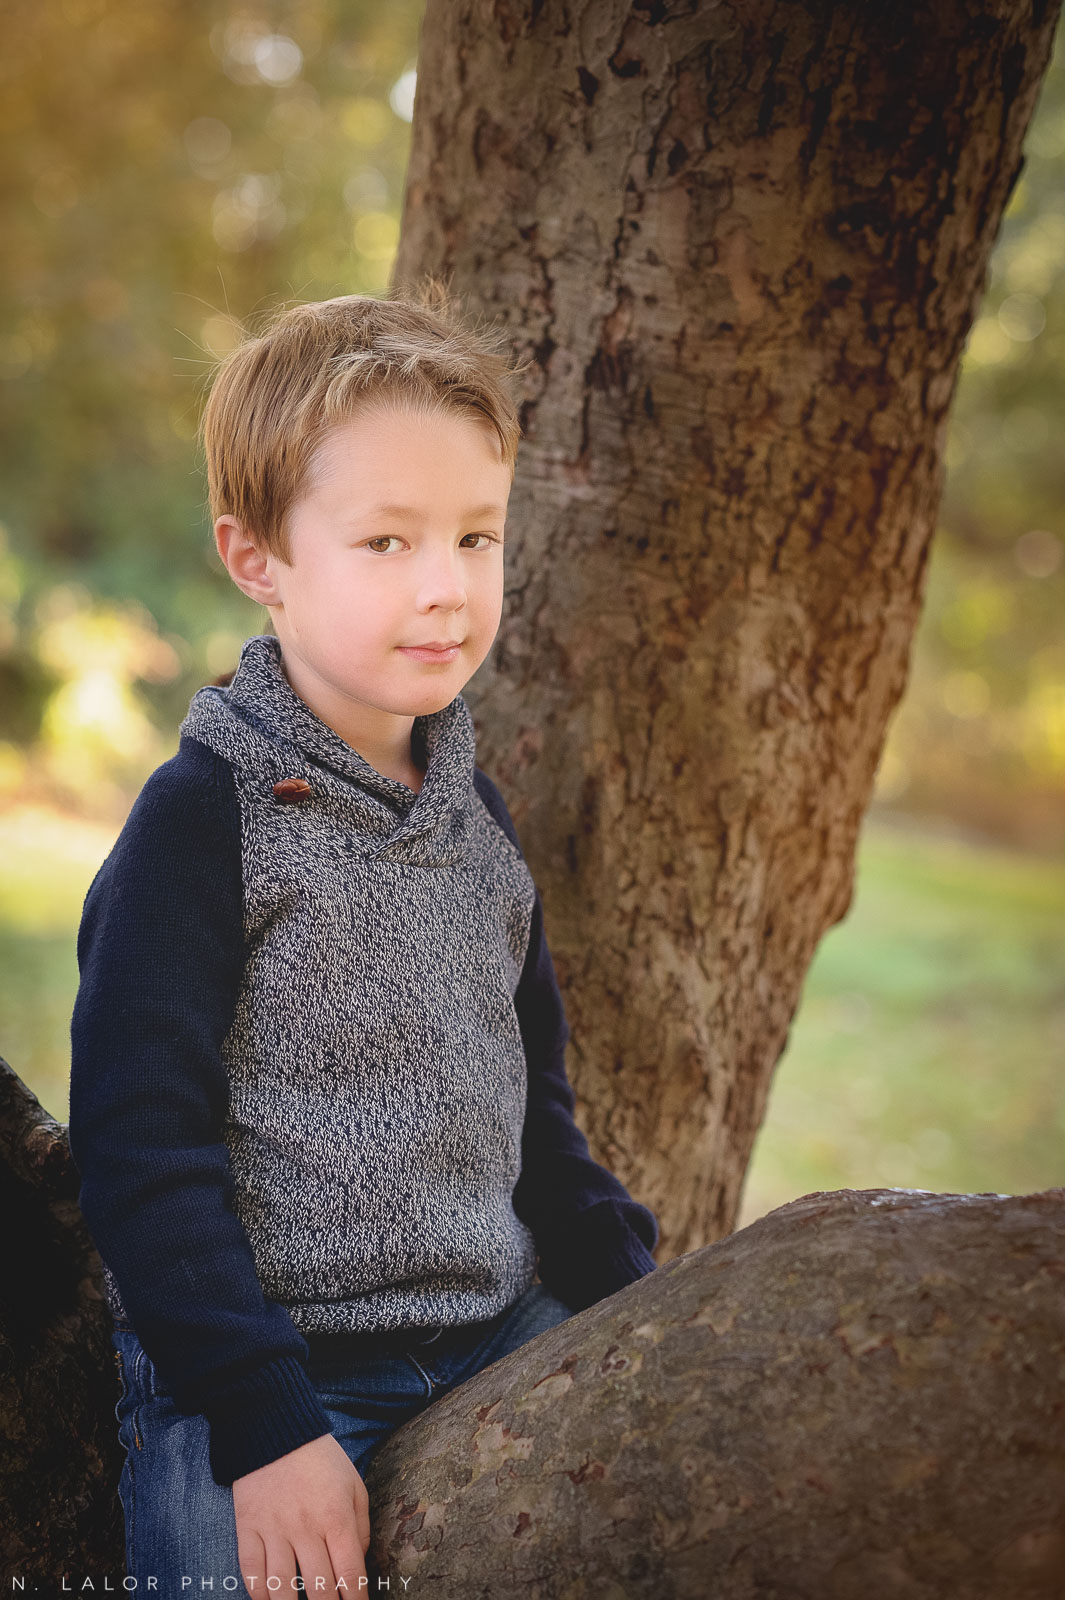 nlalor-photography-2014-styled-family-life-new-canaan-nature-center-fall-2.jpg